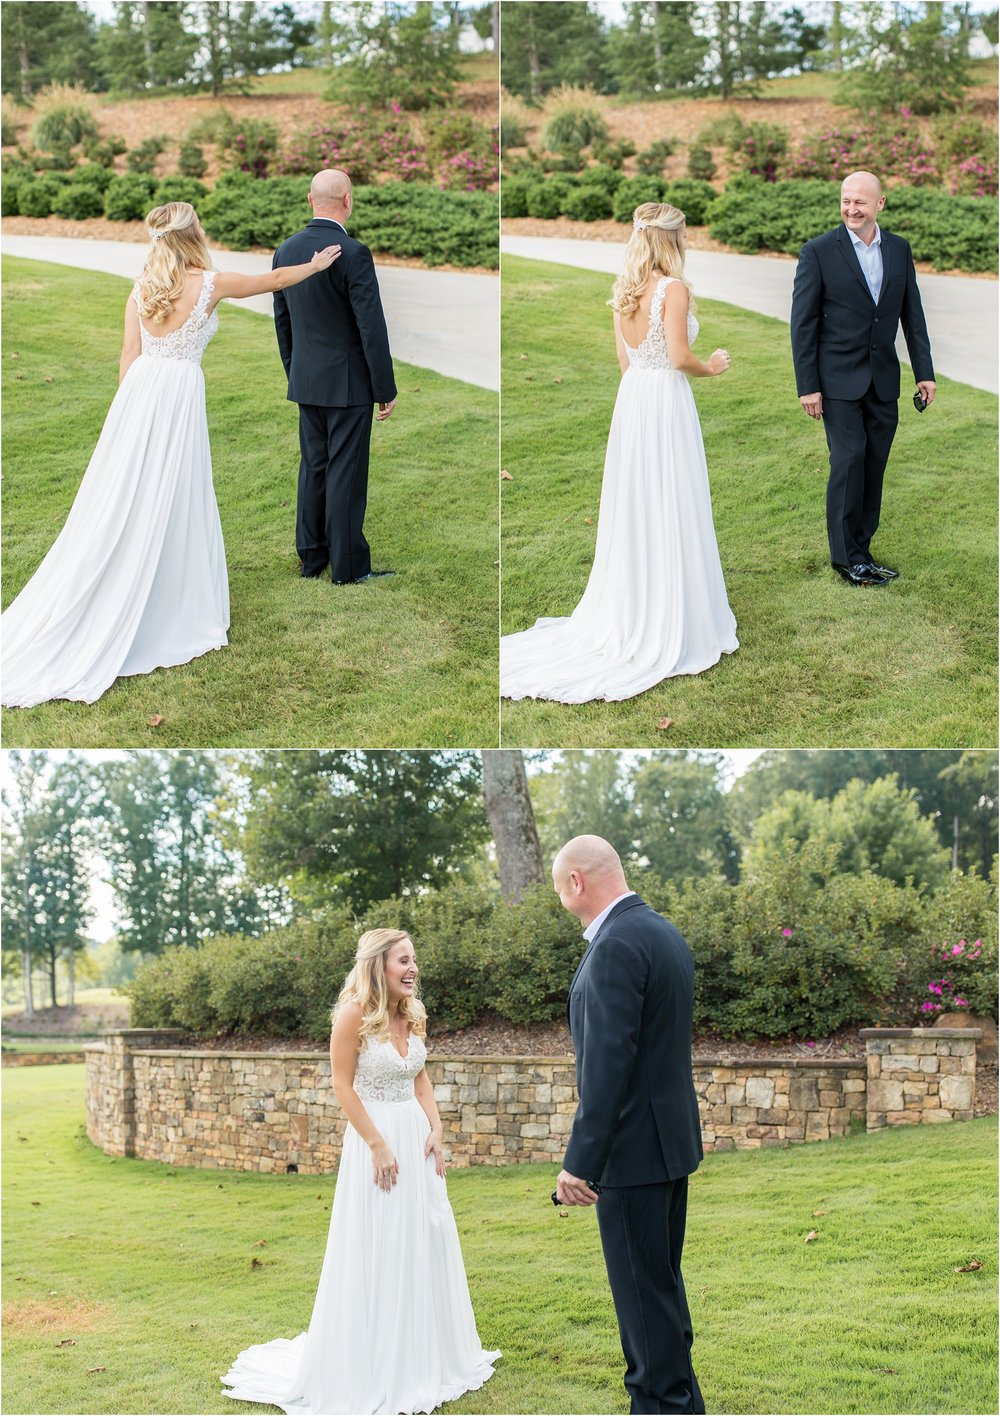 Savannah Eve Photography- Jurek-Woodworth Wedding- Sneak Peek-11.jpg